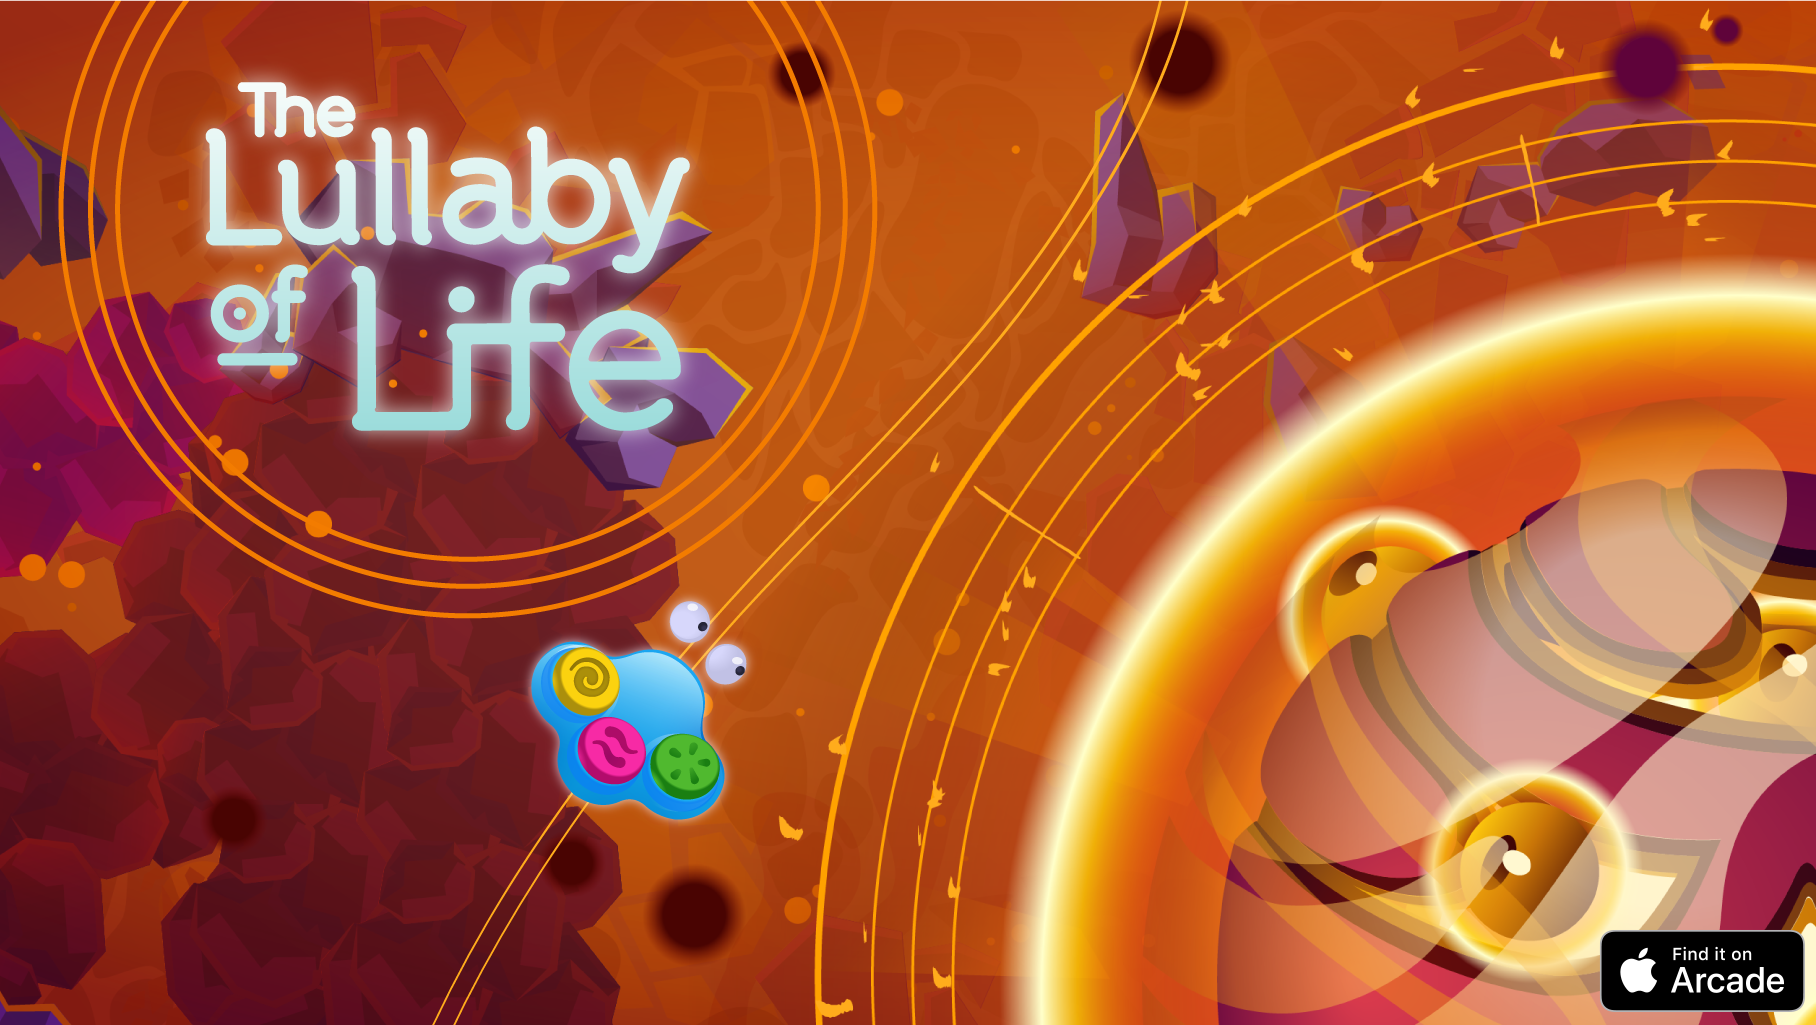 The Lullaby of Life, Apple Arcade